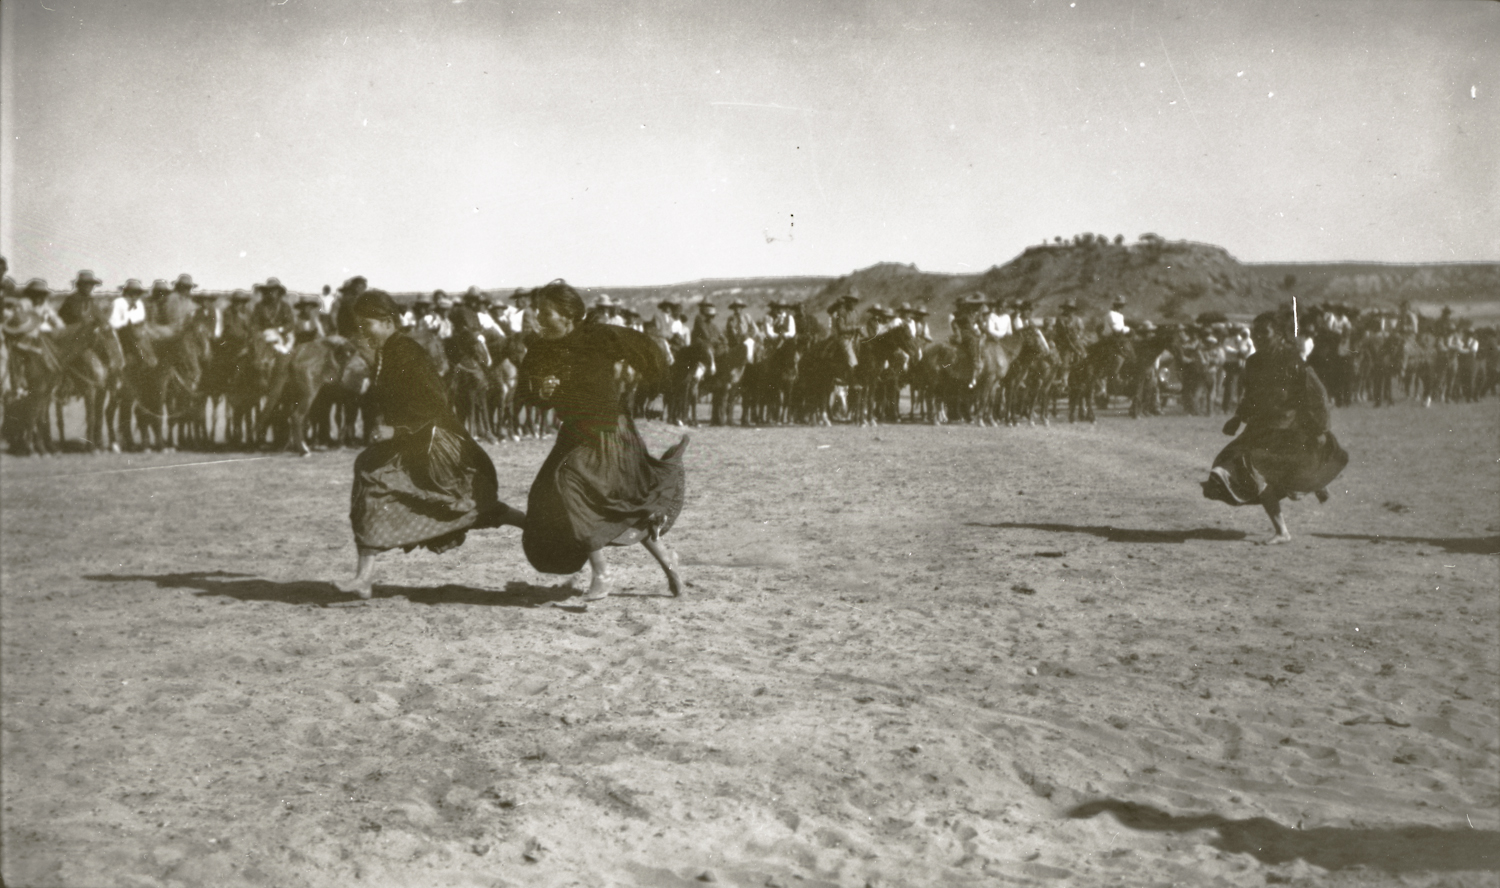 Navajo Girls in Footrace, Navajo Reservation, Arizona, July 4, 1913. Photograph by Joseph Dixon. Courtesy of the Mathers Museum of World Cultures, Wanamaker Collection, Indiana University, Bloomington, I.N., W-5386.